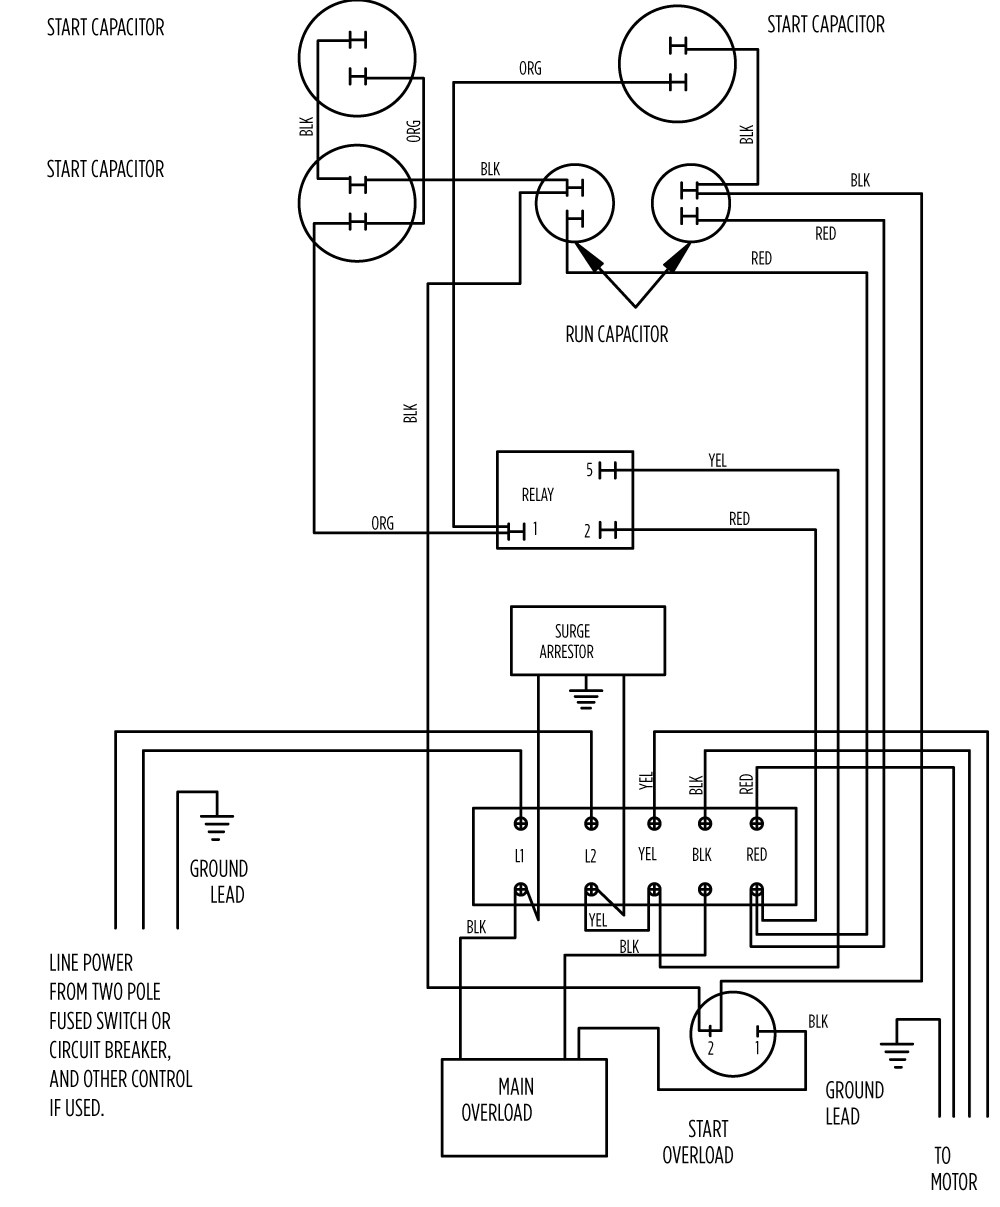 10 hp standard 282 202 9210 or 282 202 9230_aim gallery?format=jpg&quality=80 aim manual page 57 single phase motors and controls motor franklin electric wiring diagrams at n-0.co